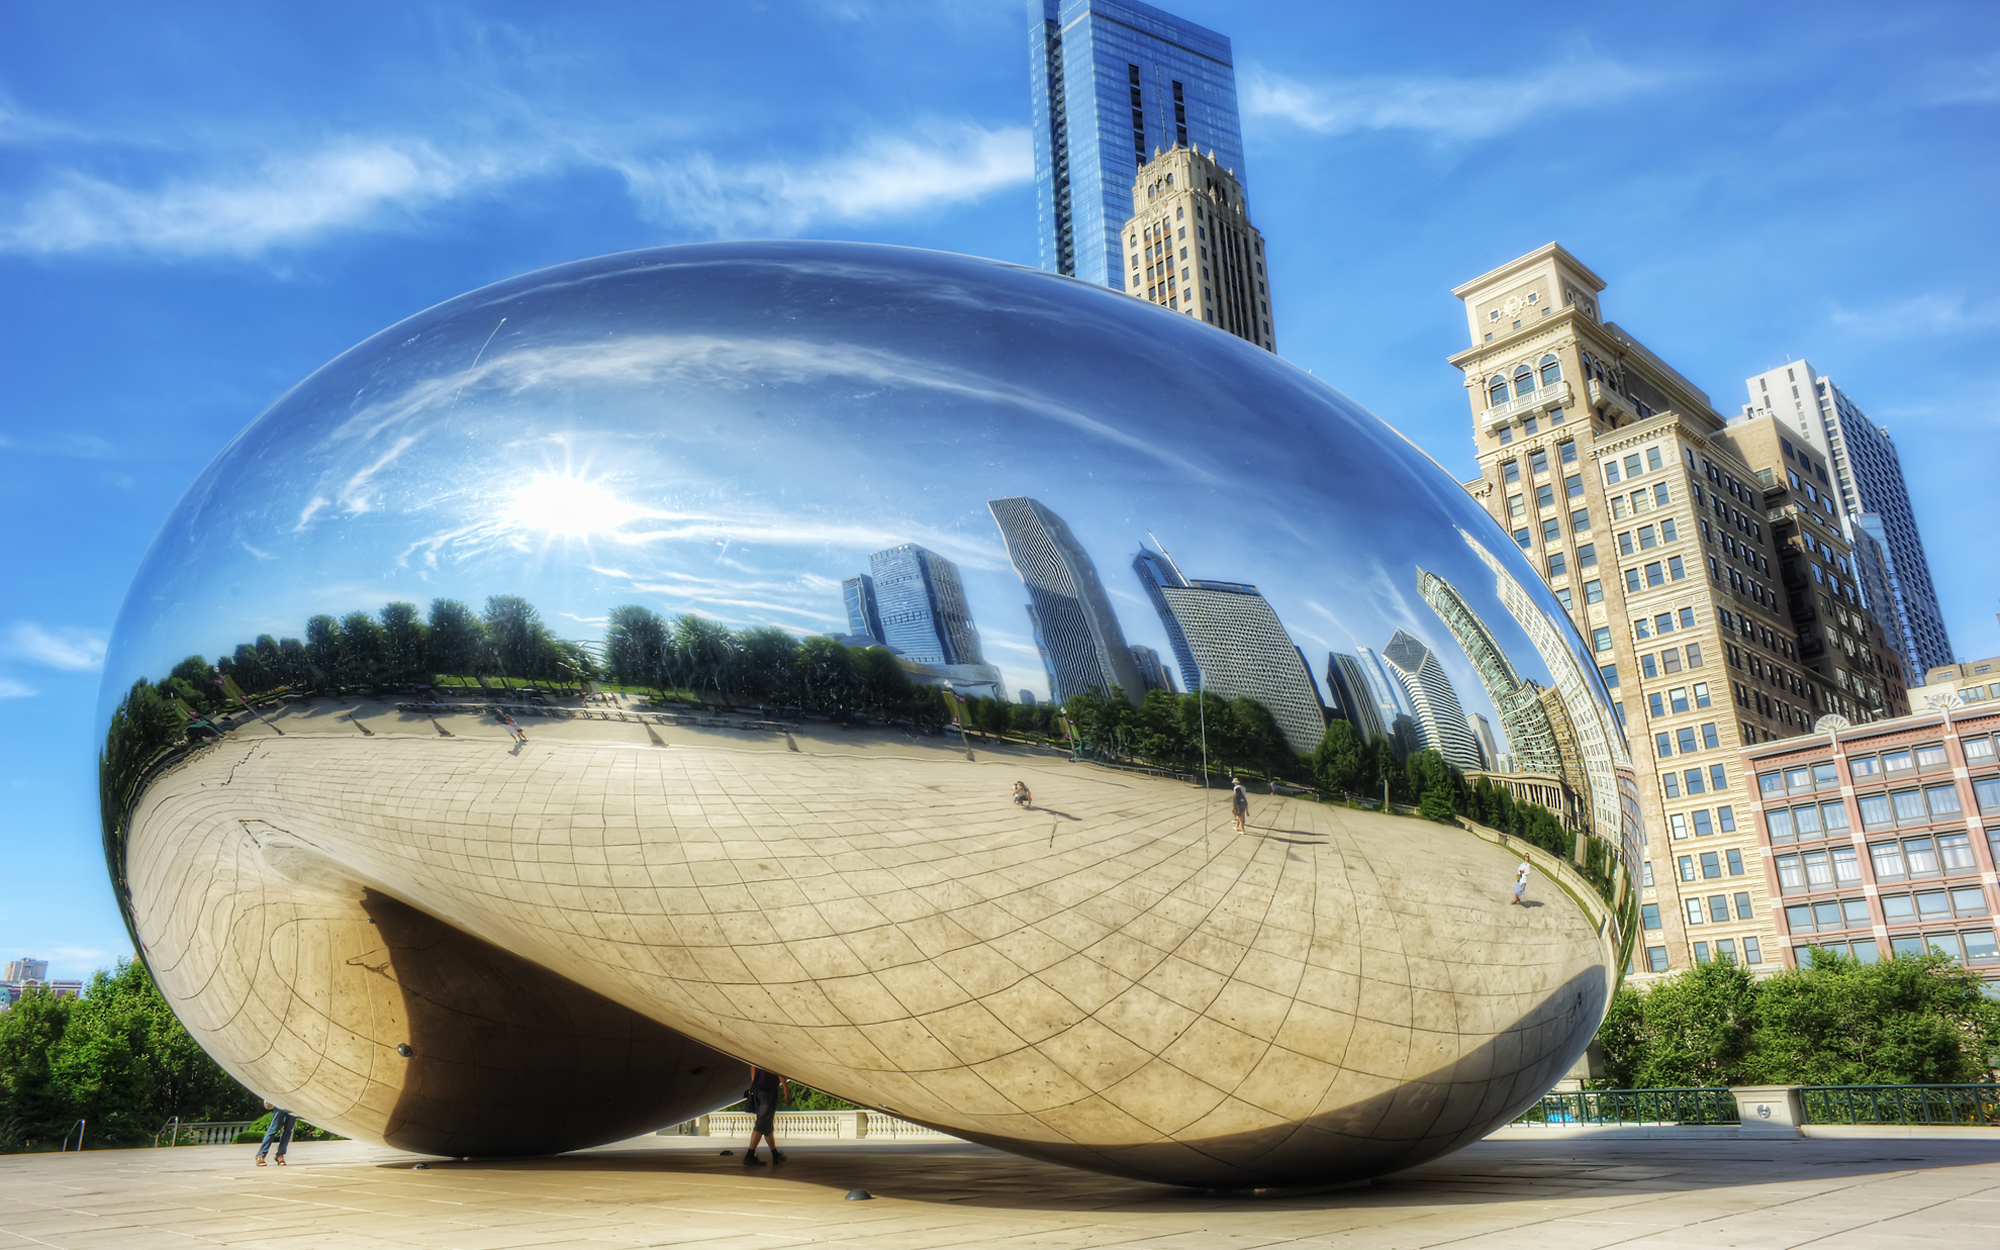 Cloud Gate and The Bean Sculpture in Chicago